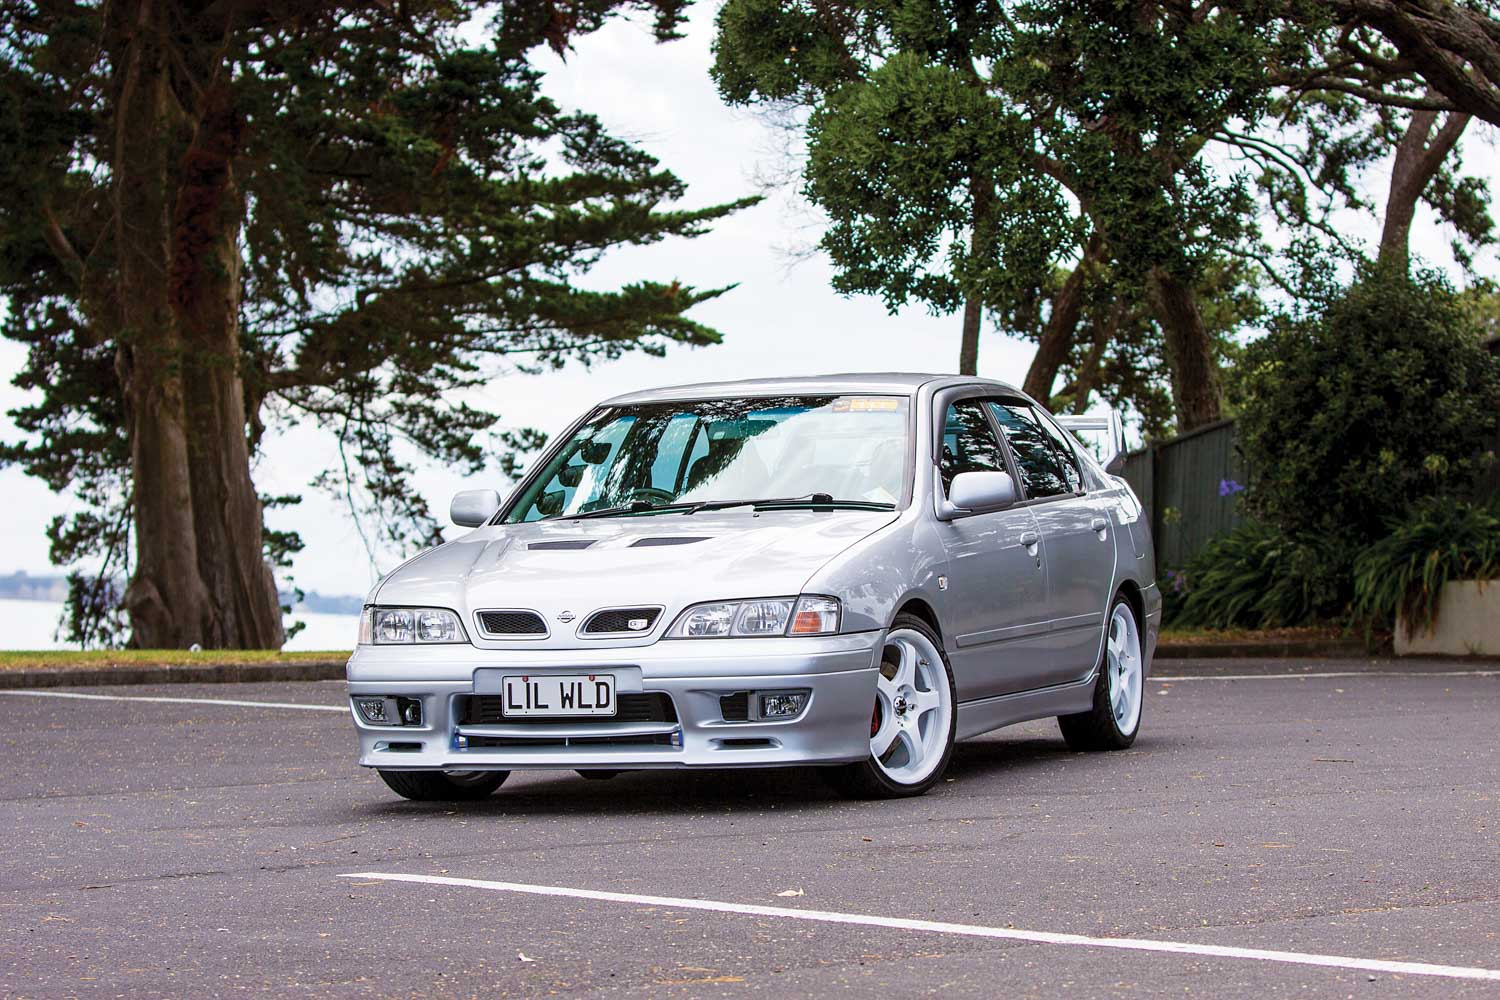 daily driven: 'subi' singh's turbocharged 1996 nissan primera p11